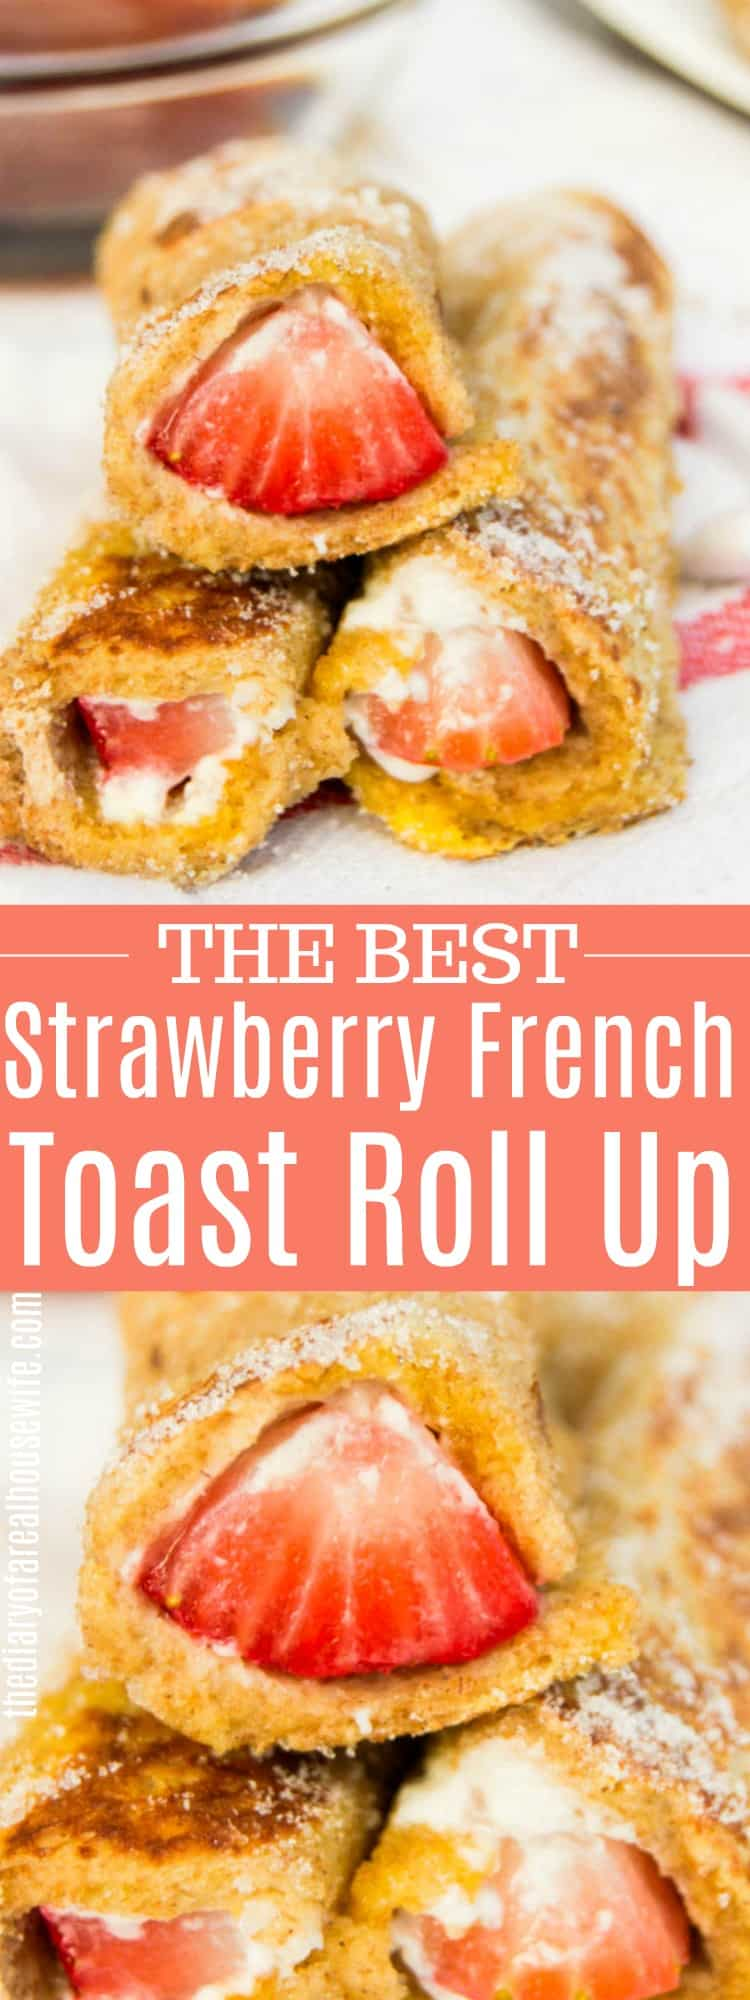 Strawberry French Toast Roll Up